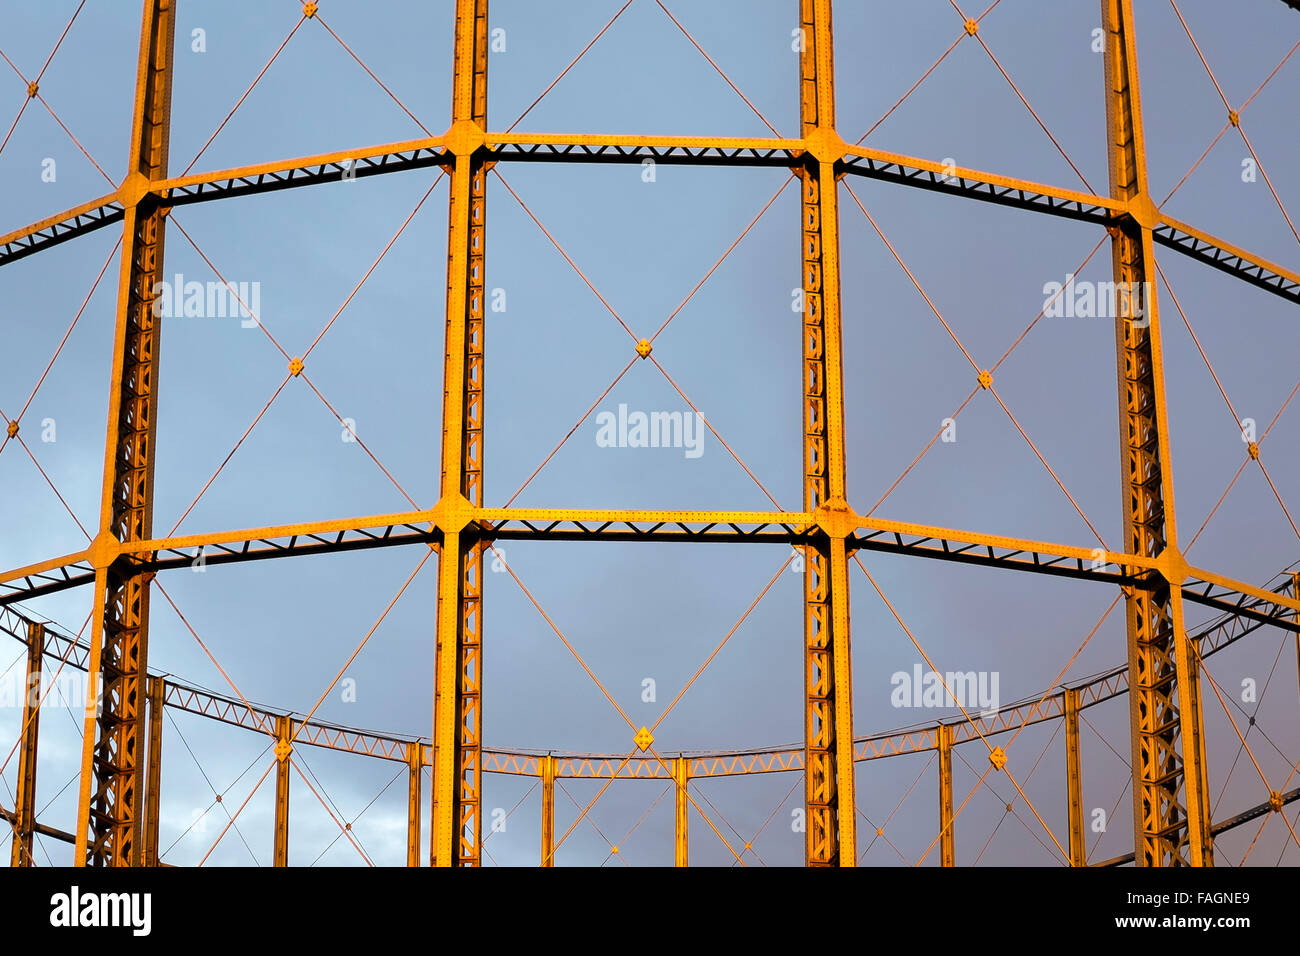 The Garston Gas holders at sunset. Once important industrial infrastructure, they are fast disappearing. South Liverpool, - Stock Image